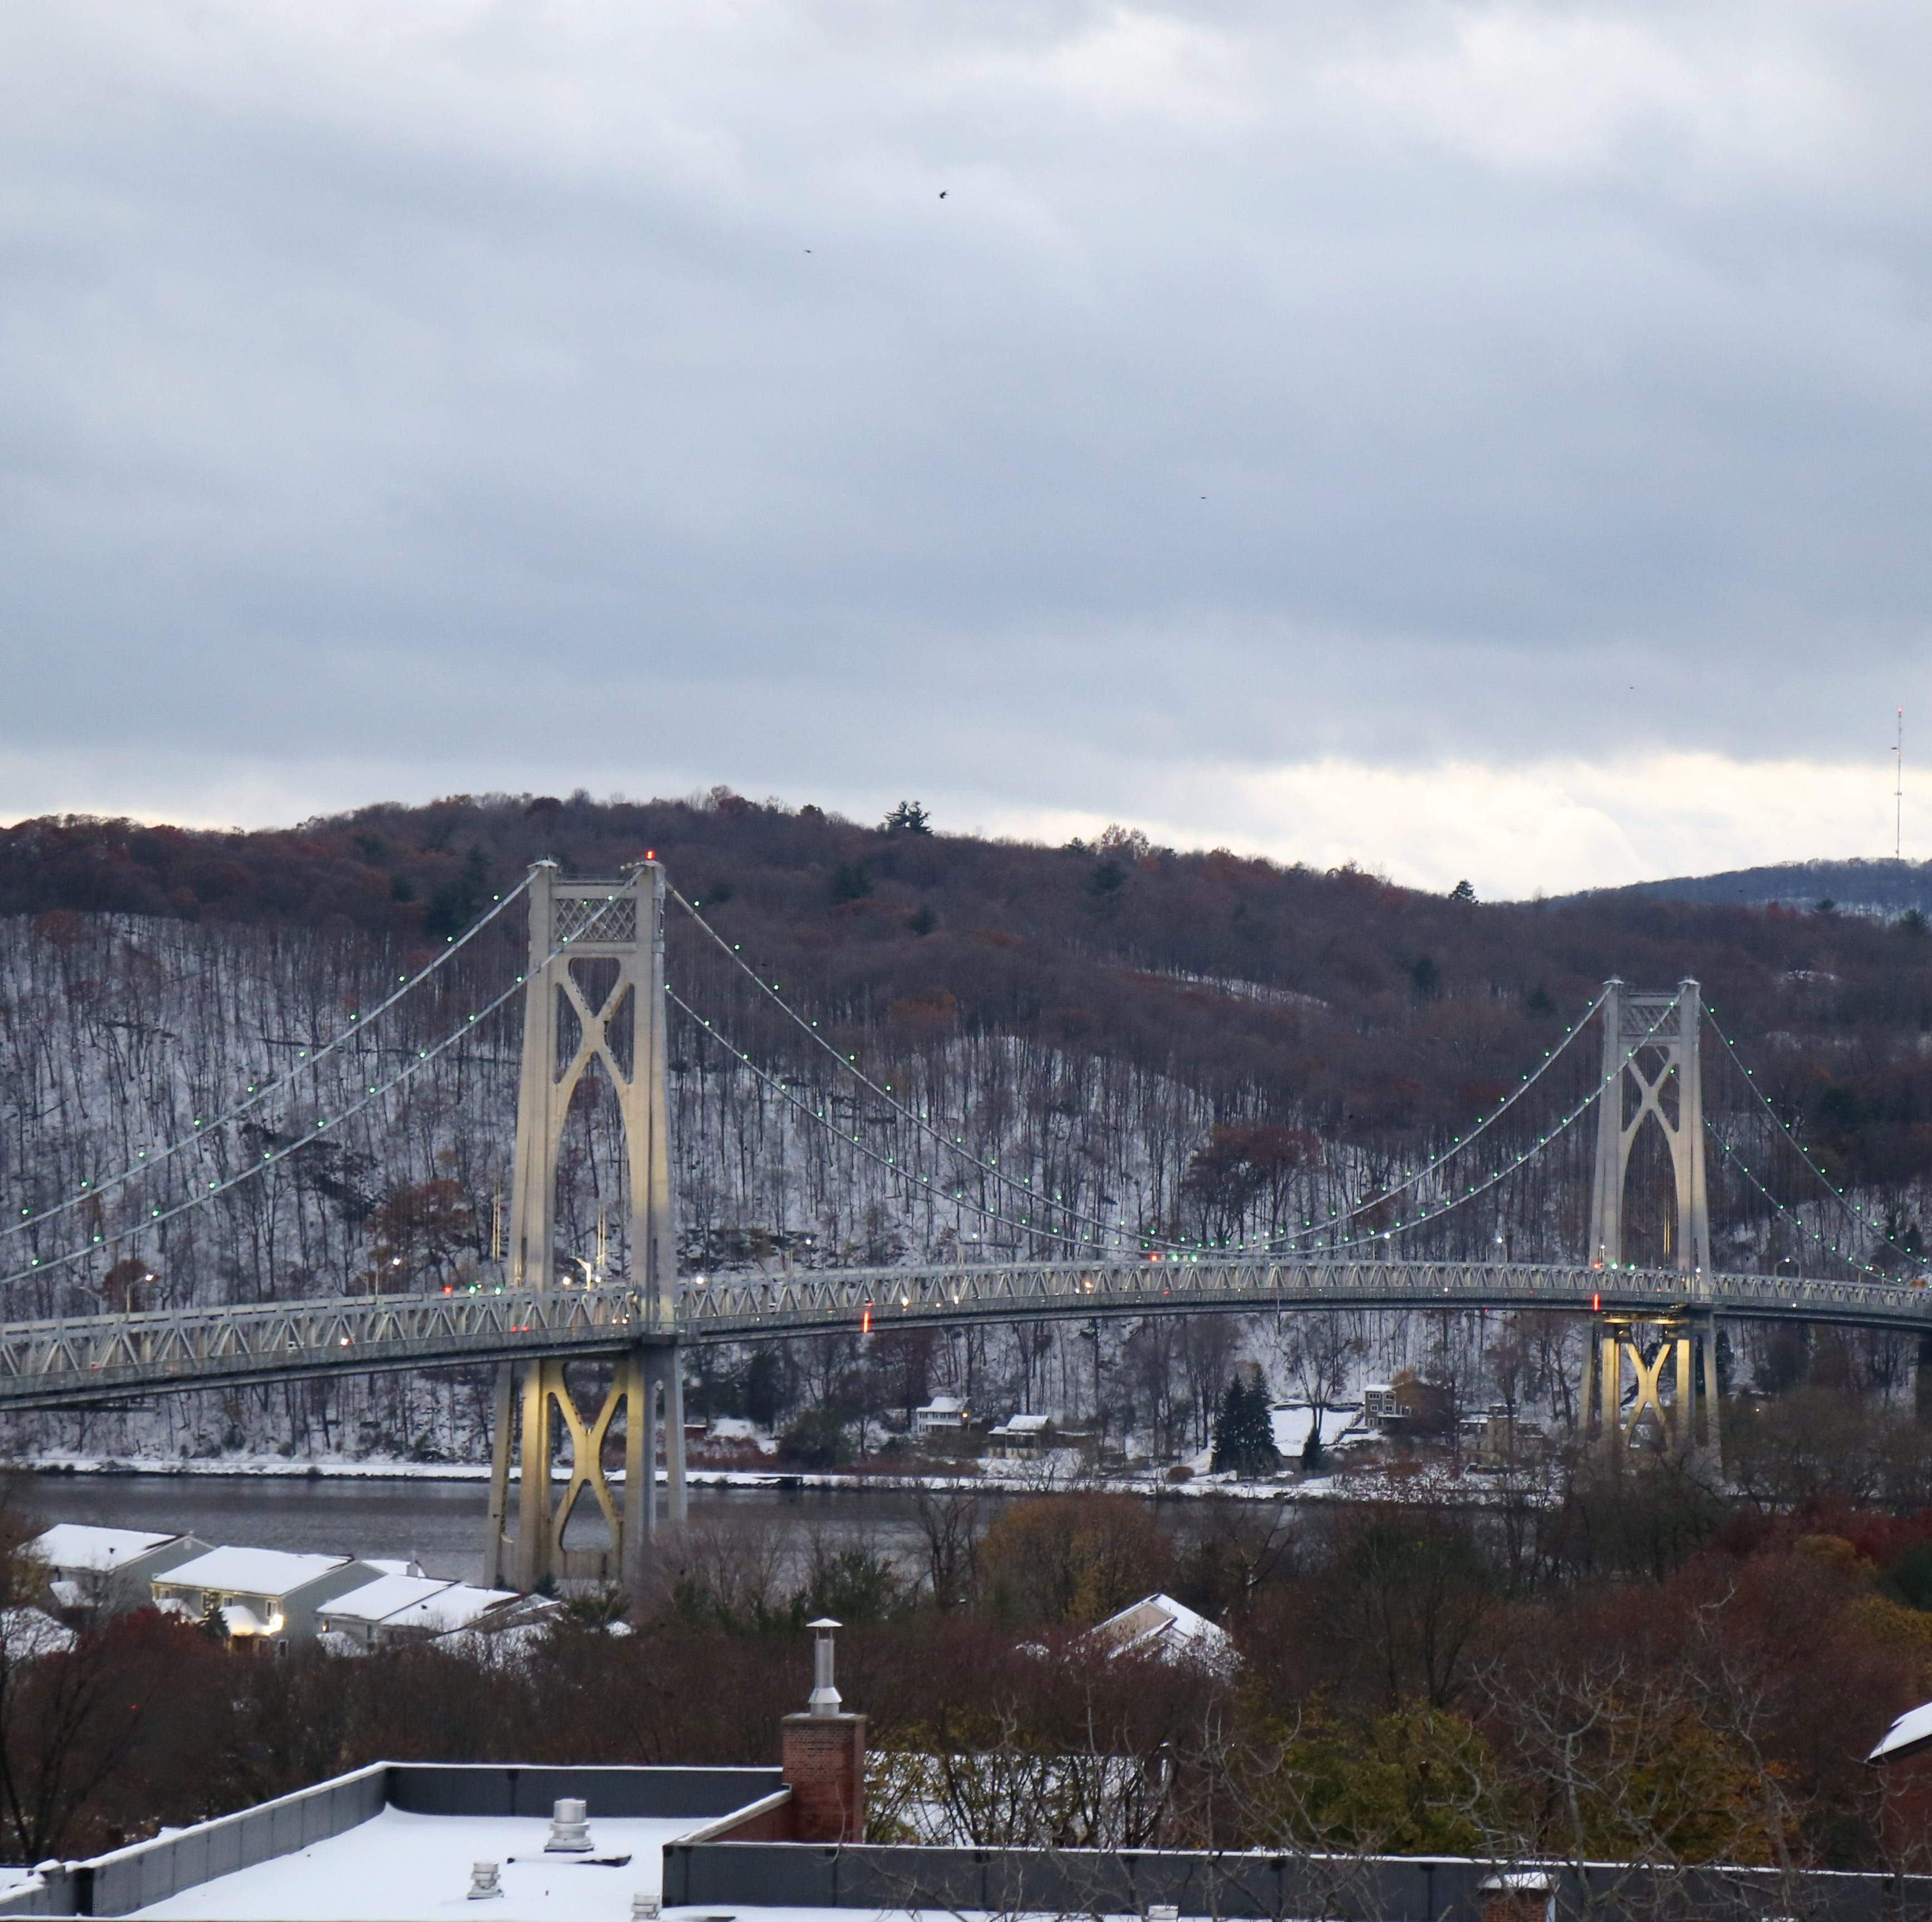 A view of the Mid-Hudson Bridge from the roof of Queen City Lofts in the City of Poughkeepsie on November 16, 2018.